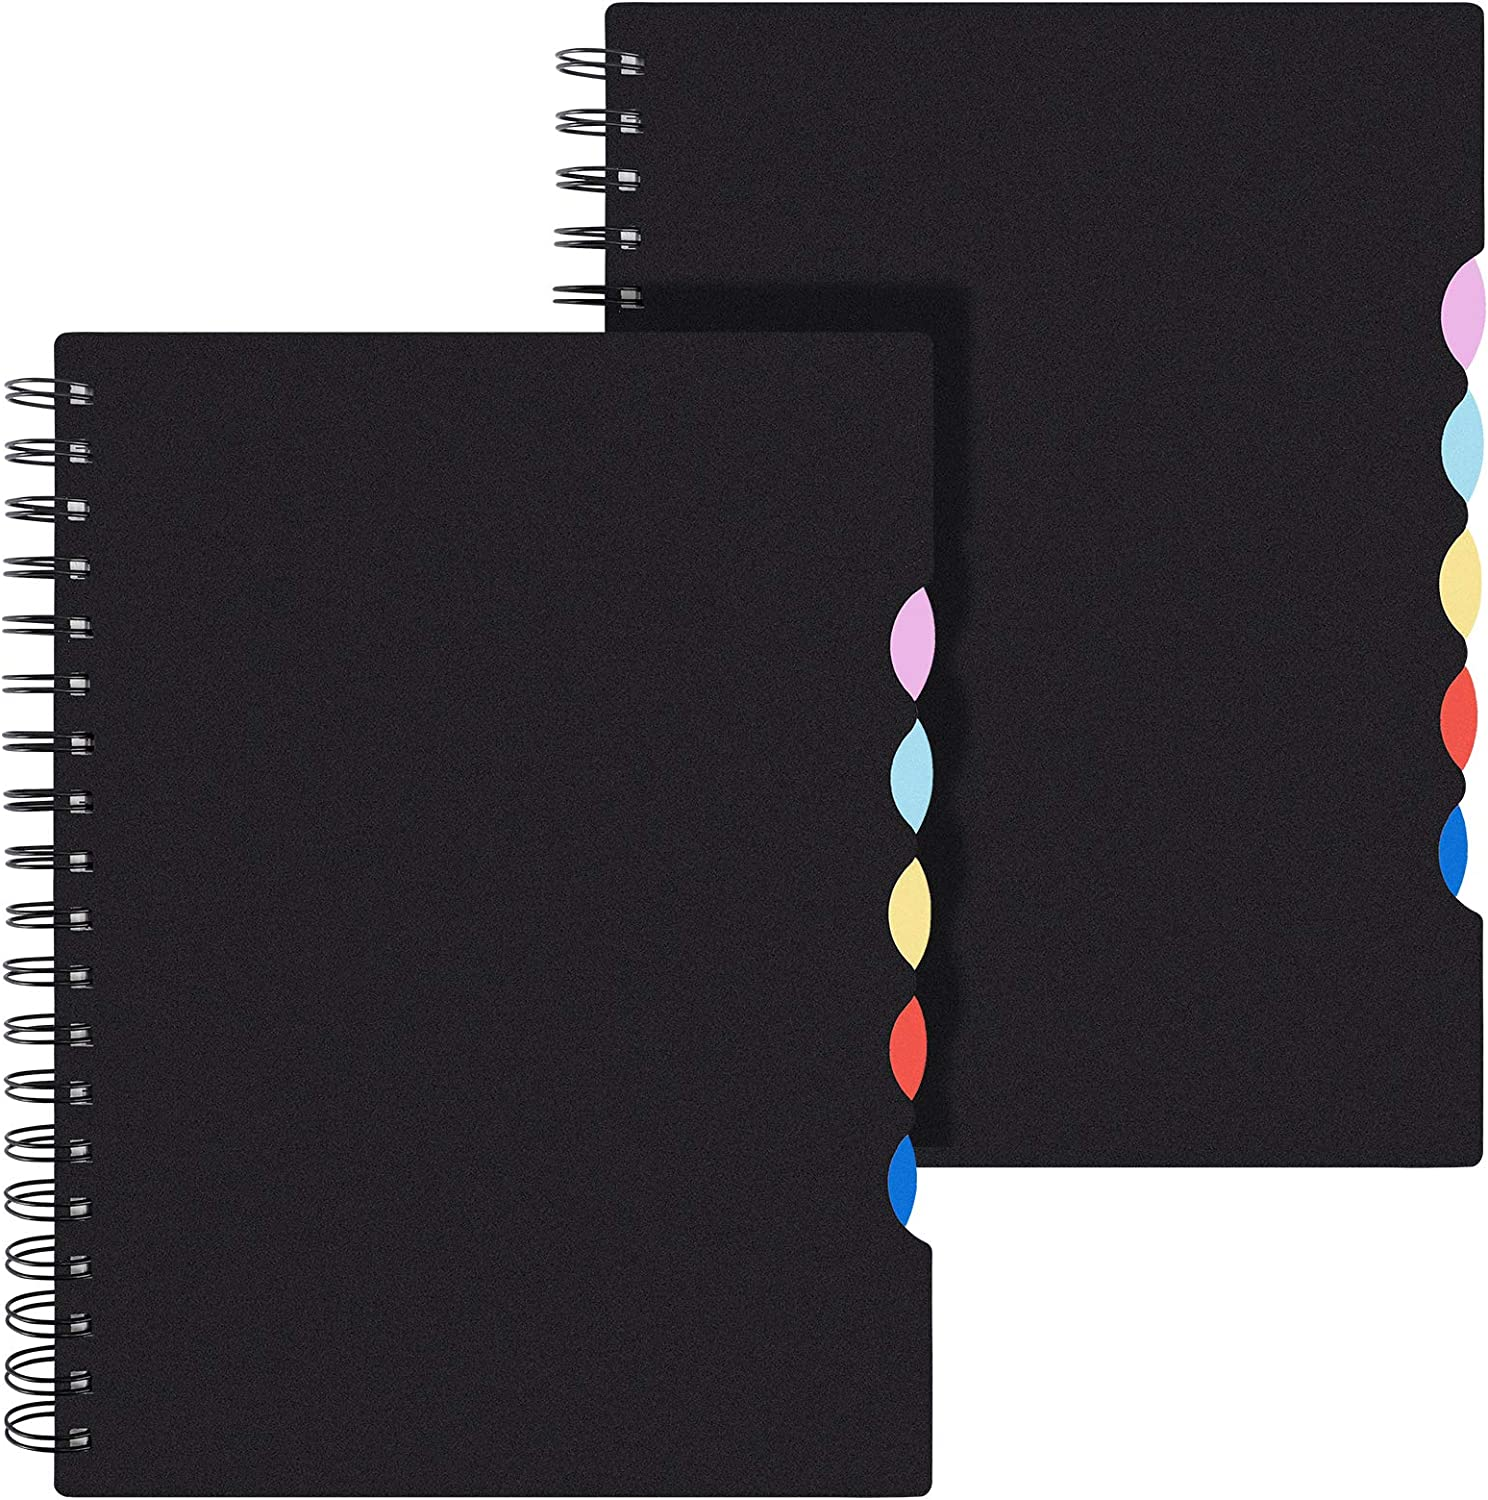 """EOOUT B5 Tabbed Spiral Notebook, Lined Journals, Ruled Notebooks with Colored Dividers, 10""""×7.5"""", 290 Pages, Memo Planner for School Office Supplies : Office Products"""